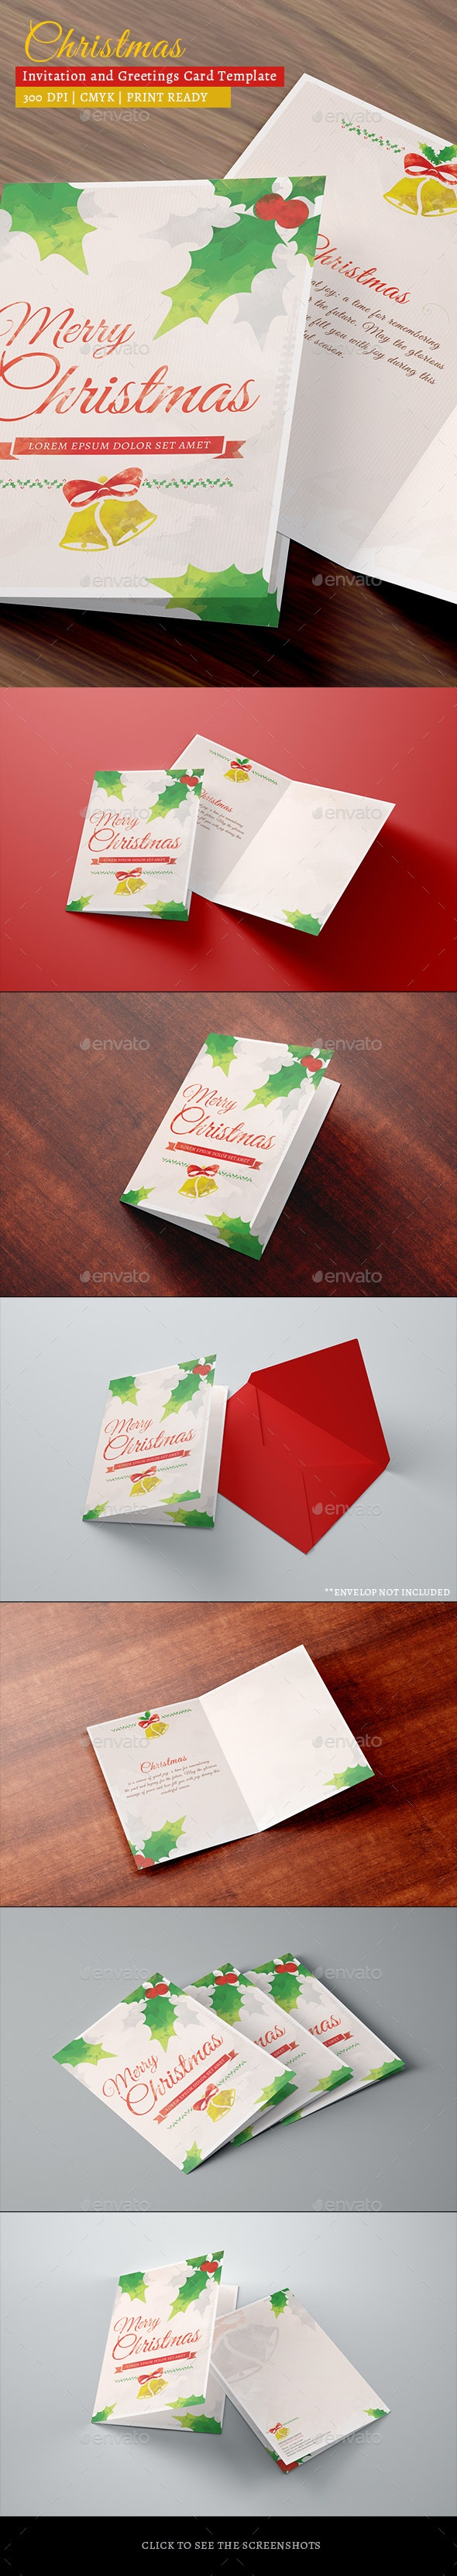 Christmas Celebration Greetings/Invitation Card - Invitations Cards & Invites